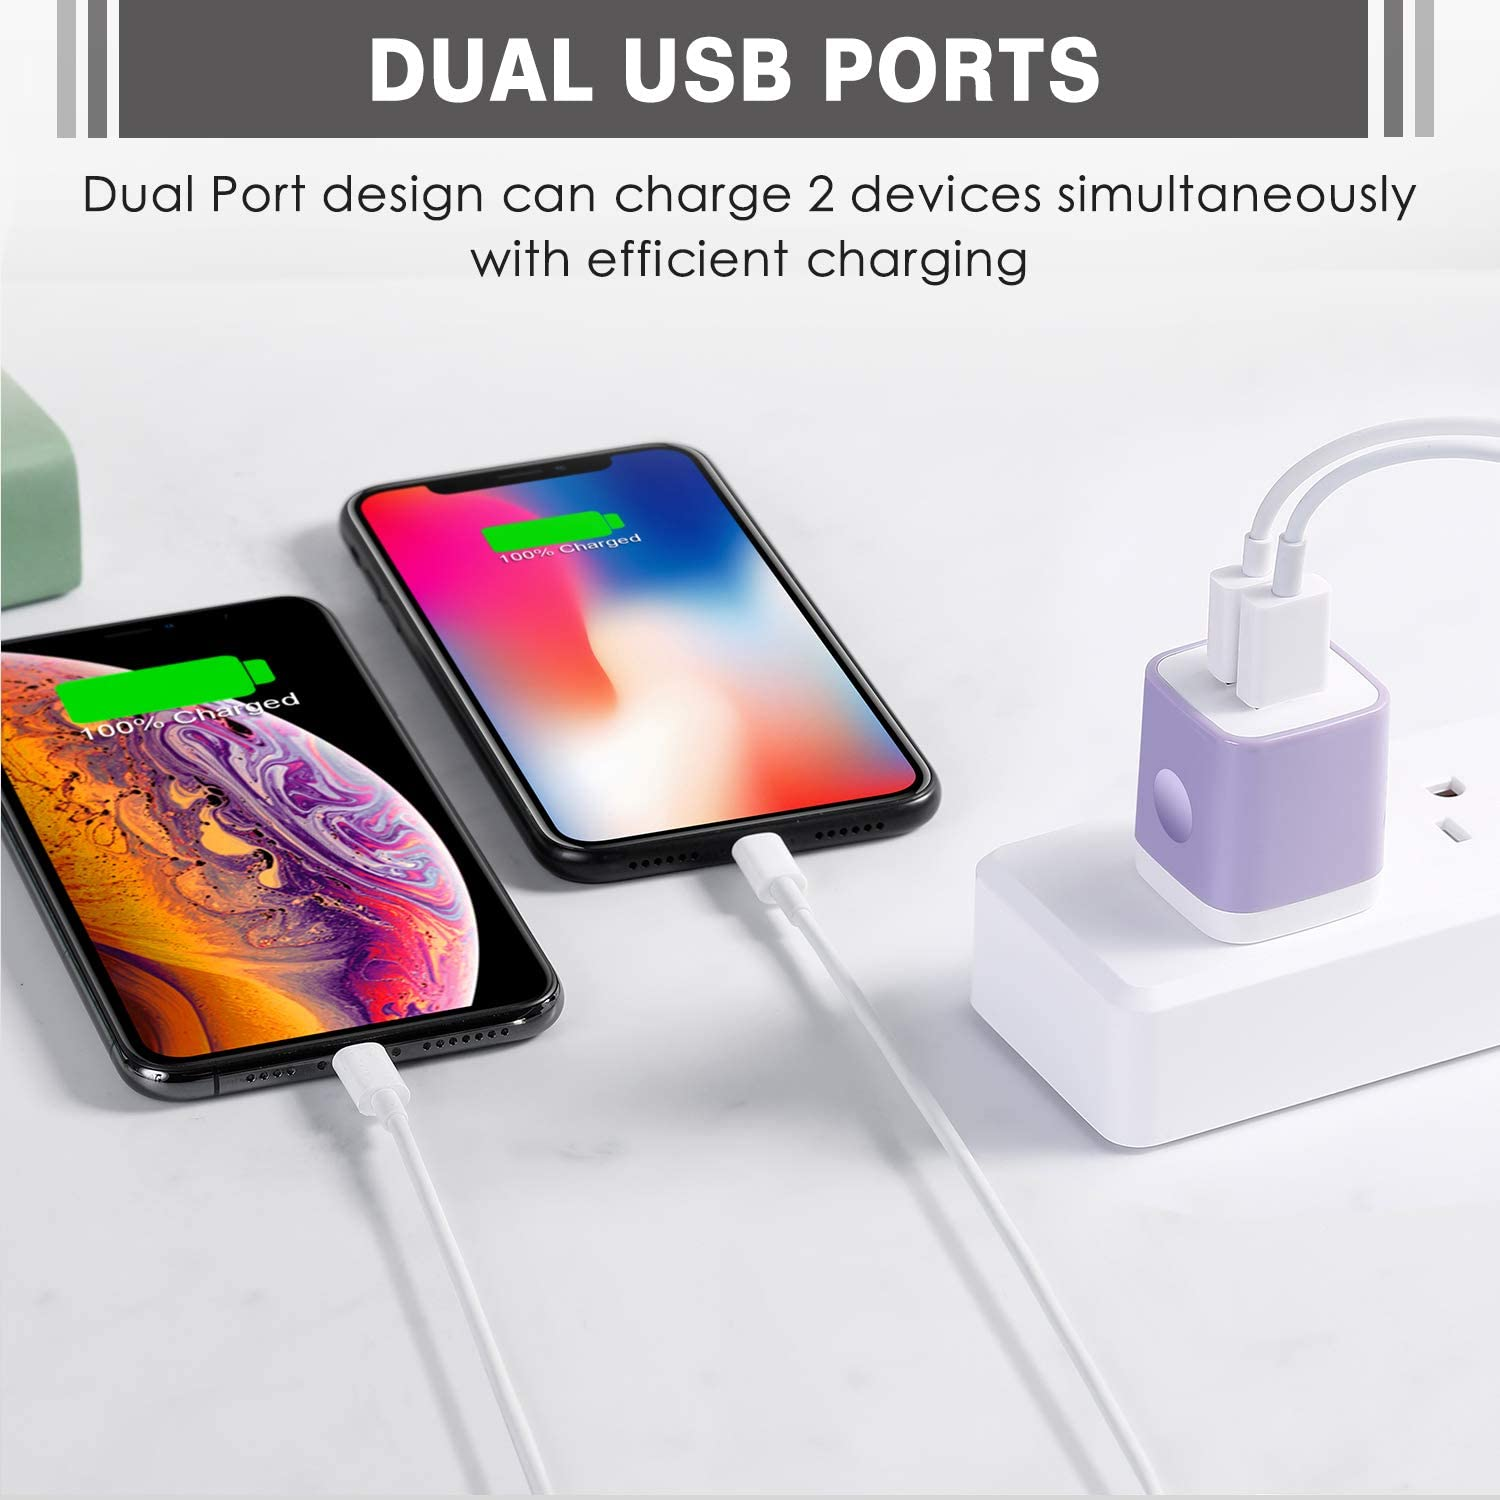 Samsung Galaxy S8 S7 S6 Edge Pad 5-Pack 2.1A Dual Port USB Charger Plug Power Adapter Charging Block Cube for Phone Xs Max Xs XR X 8 7 6S 6 Plus 5S LG Moto Android Phone Power-7 USB Wall Charger